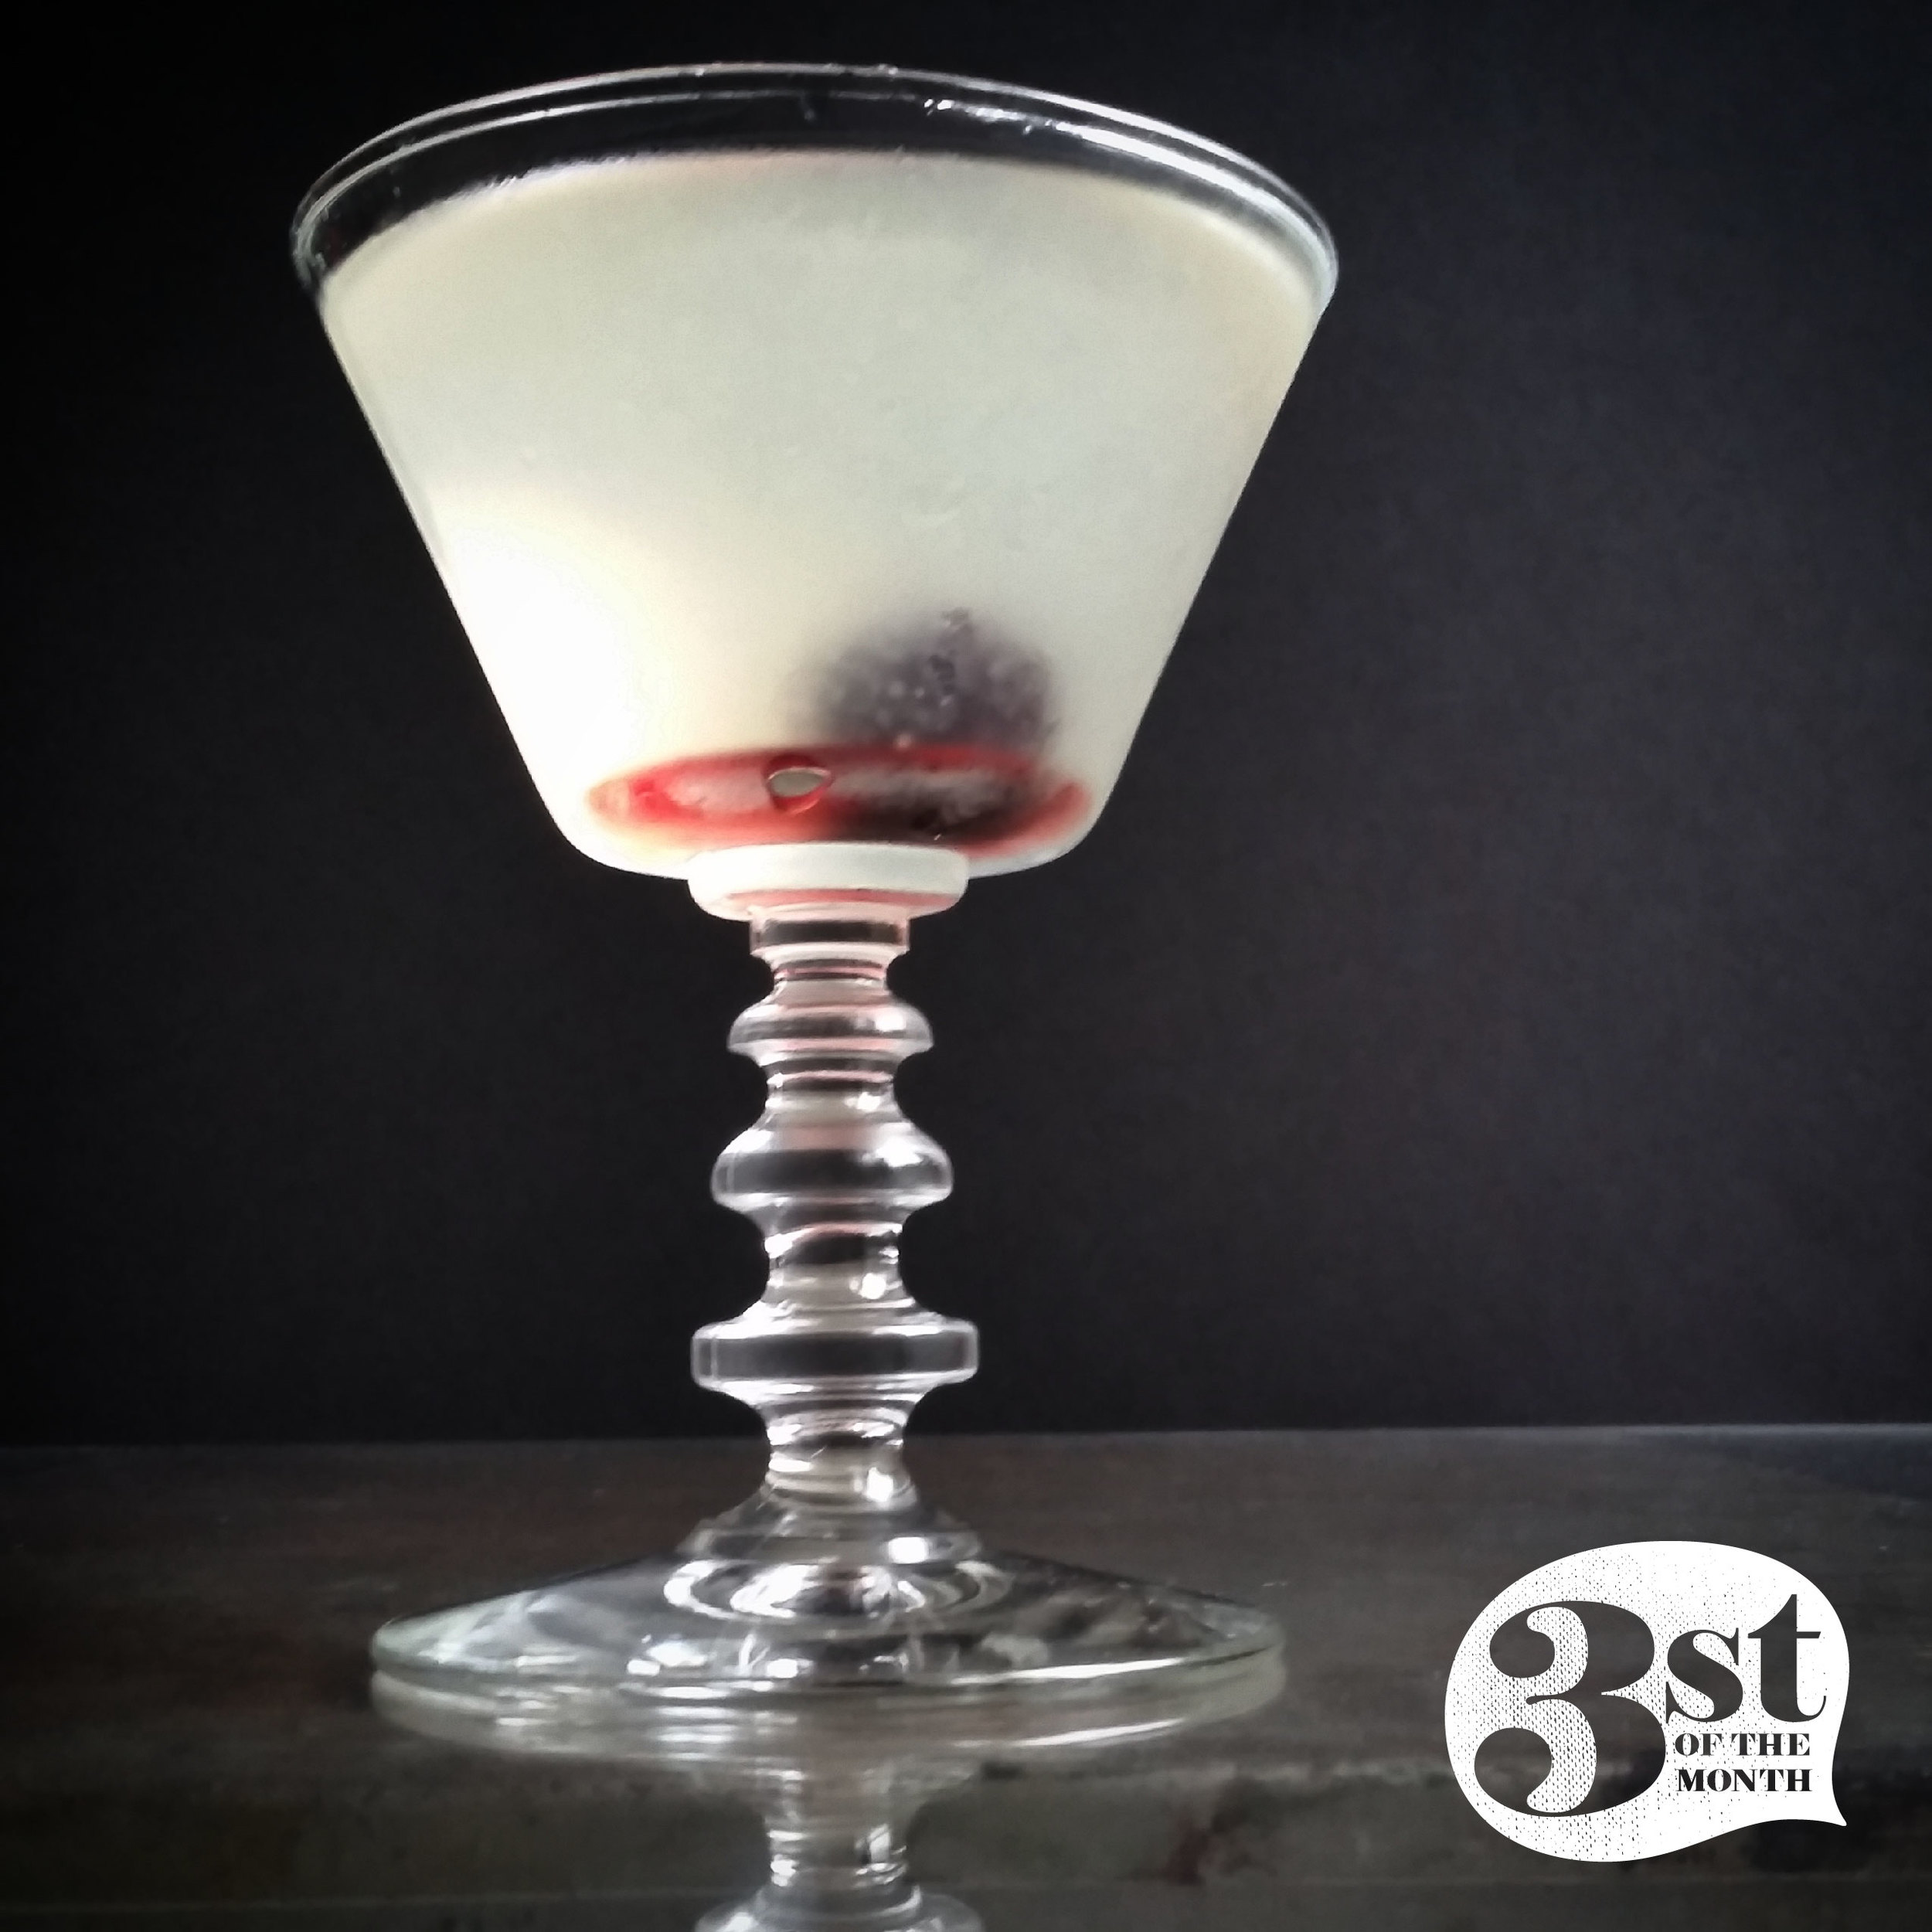 Take the Train, a reinvention of the Aviation cocktail from 3st of the Month